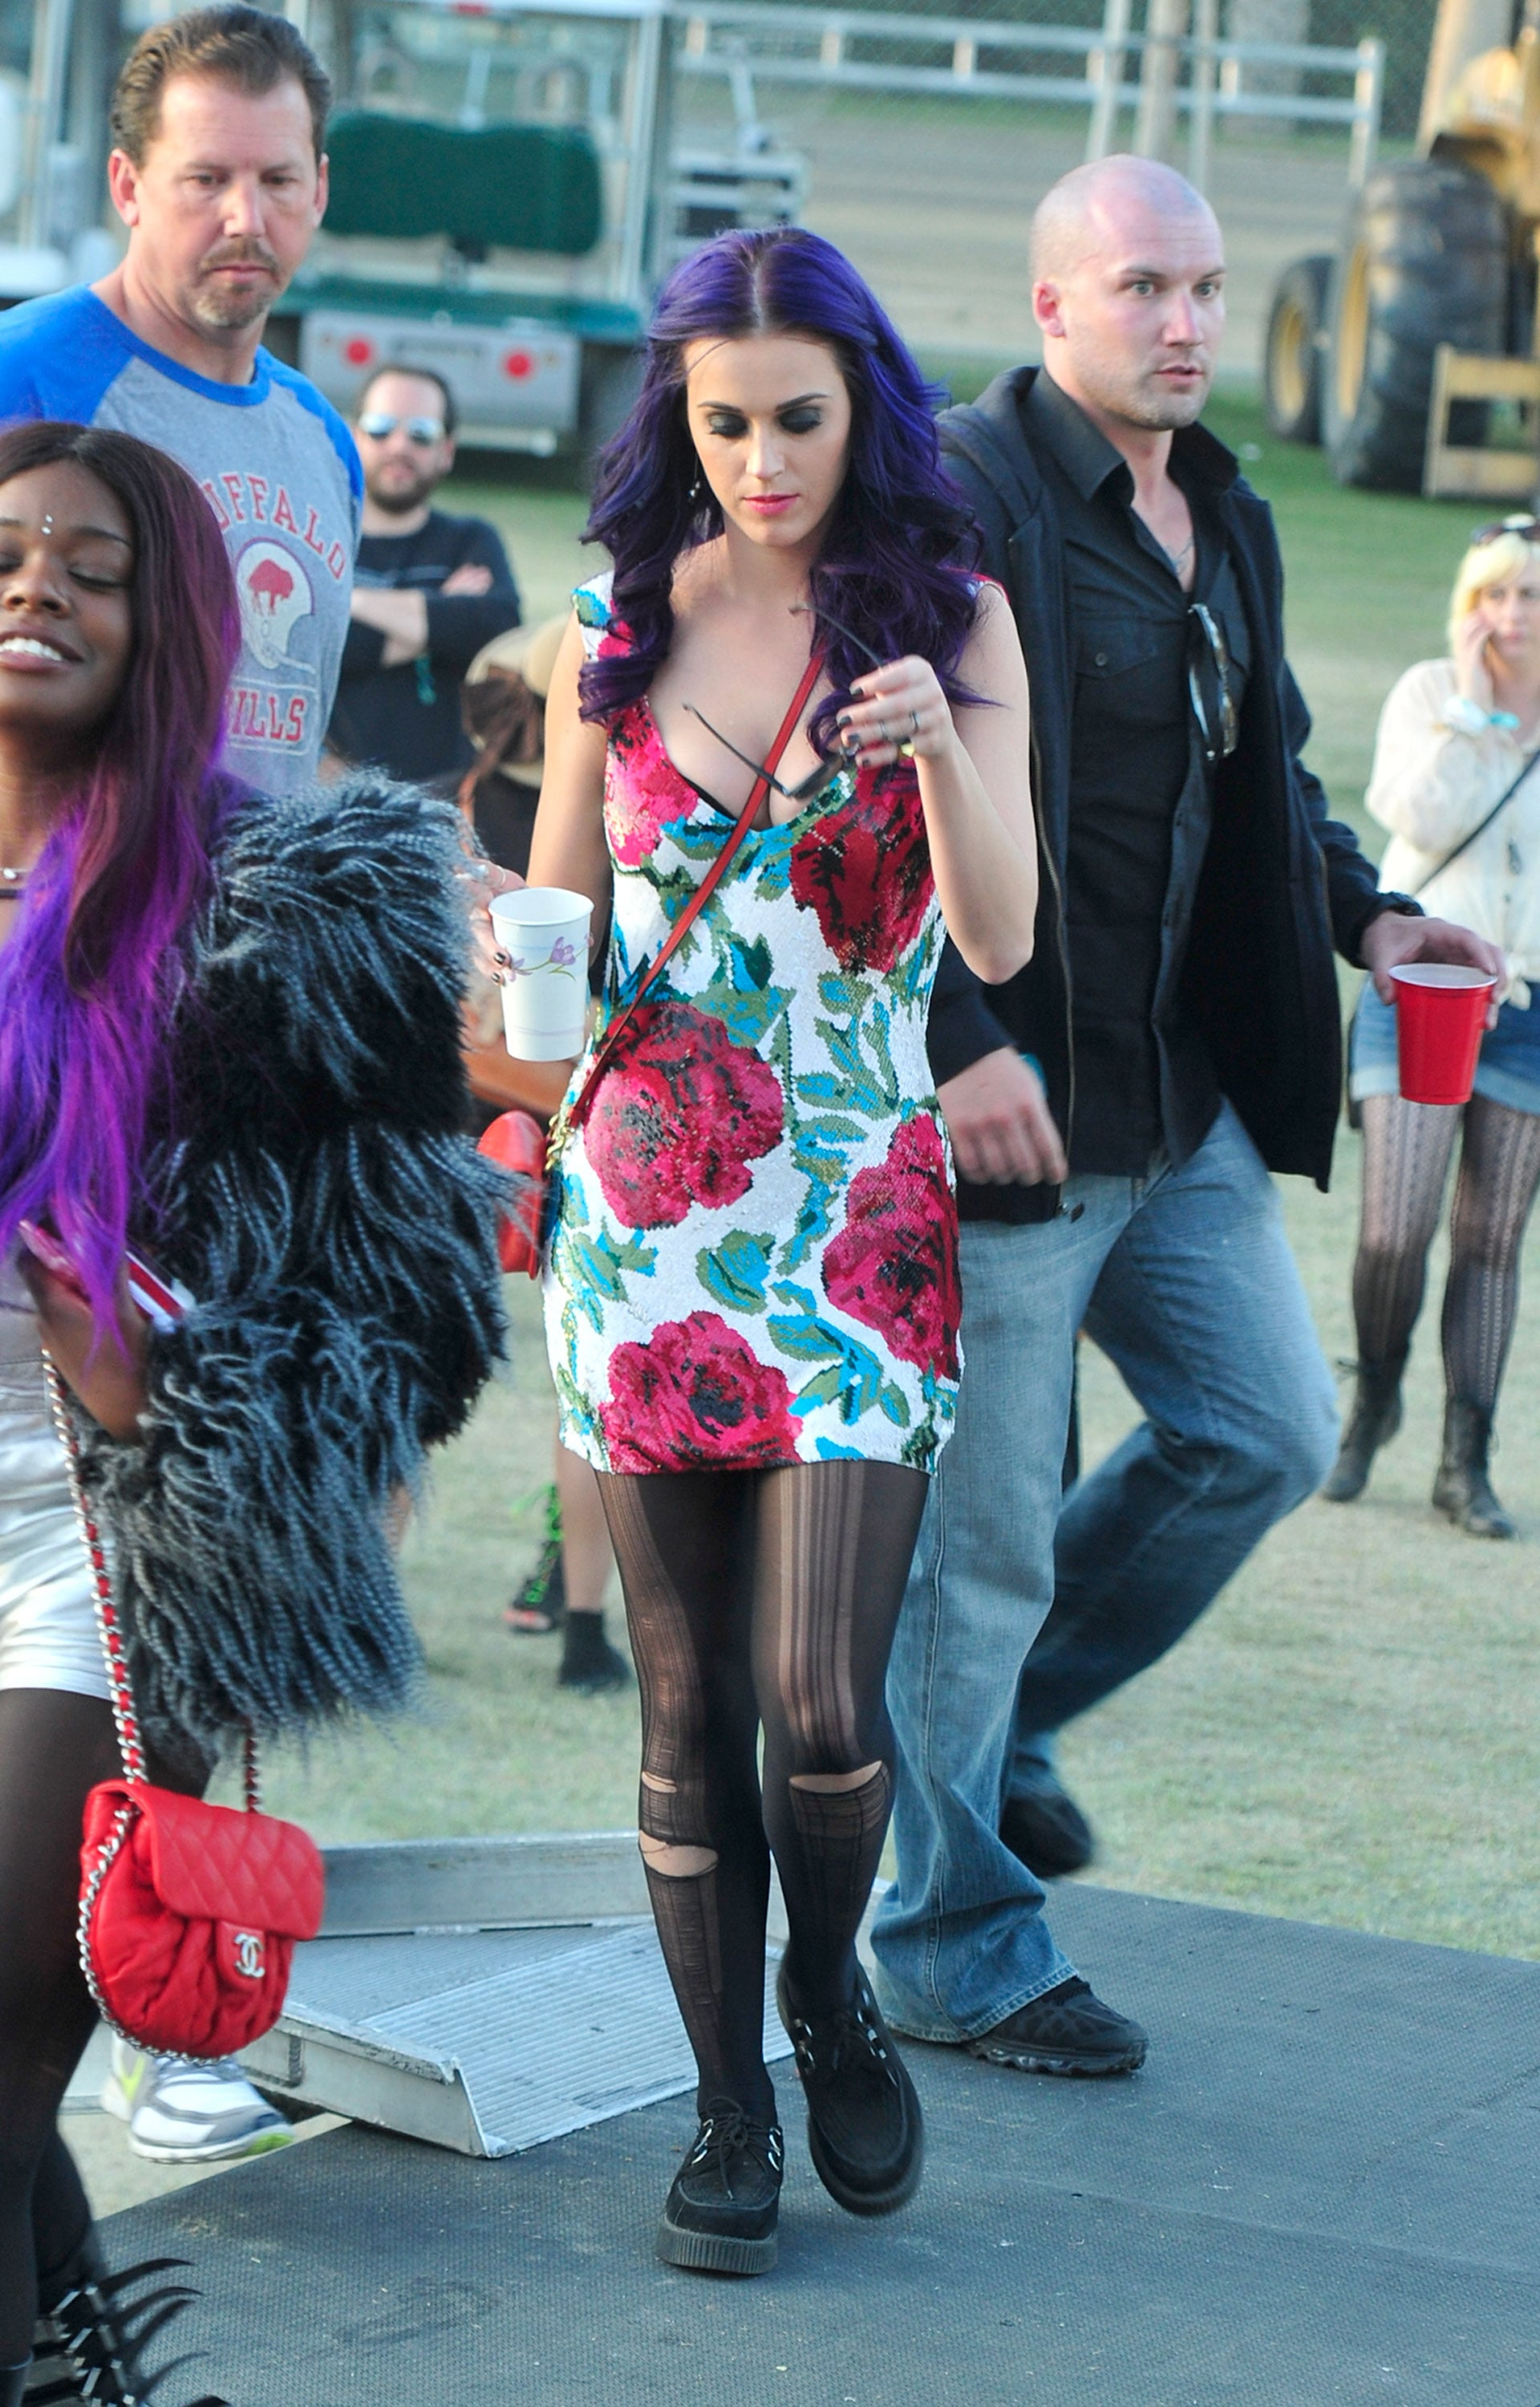 Katy Perry wore a floral dress at the festival in 2012.